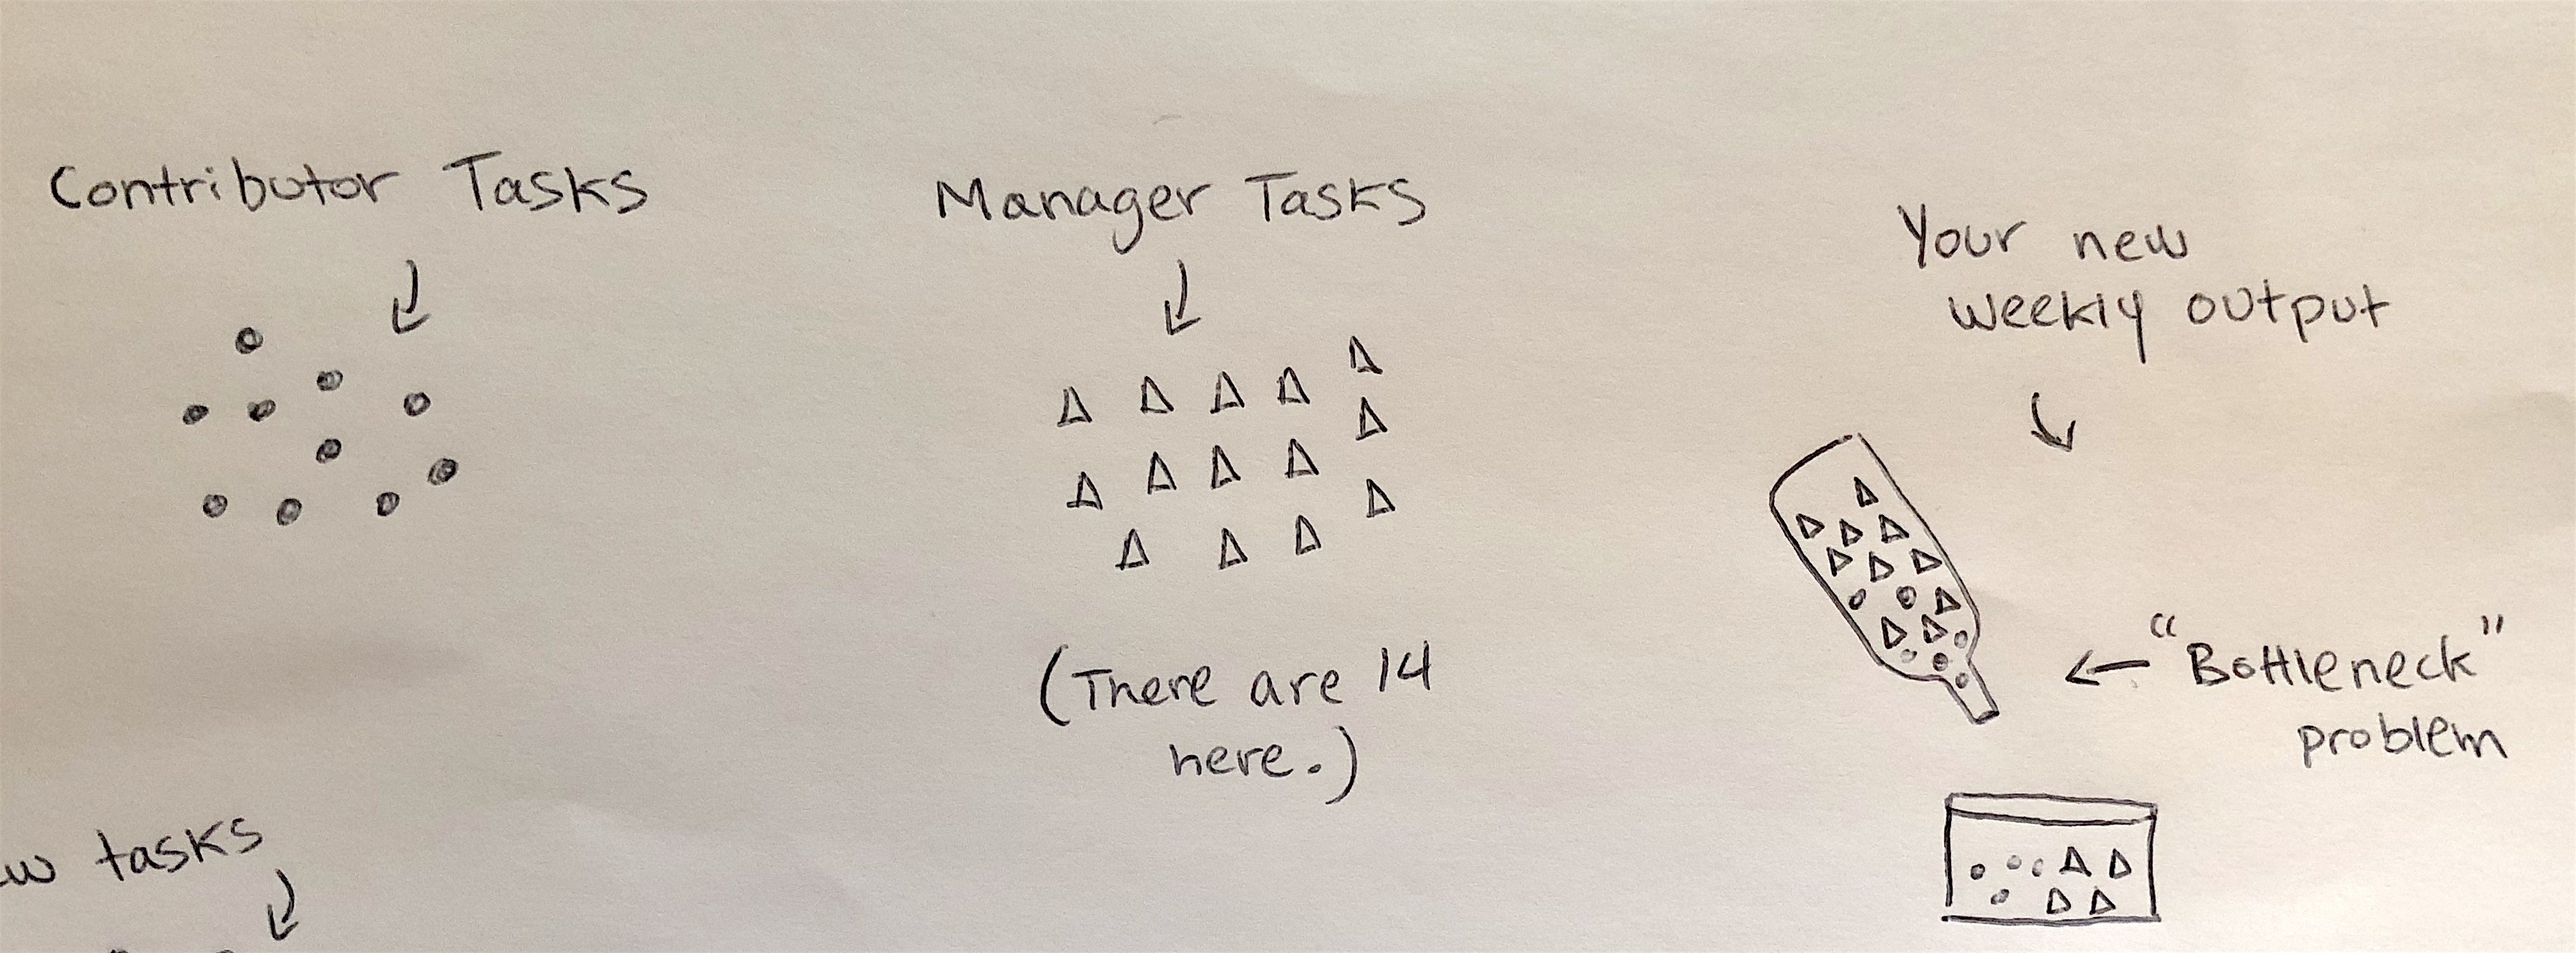 Management skills IMAGE 2